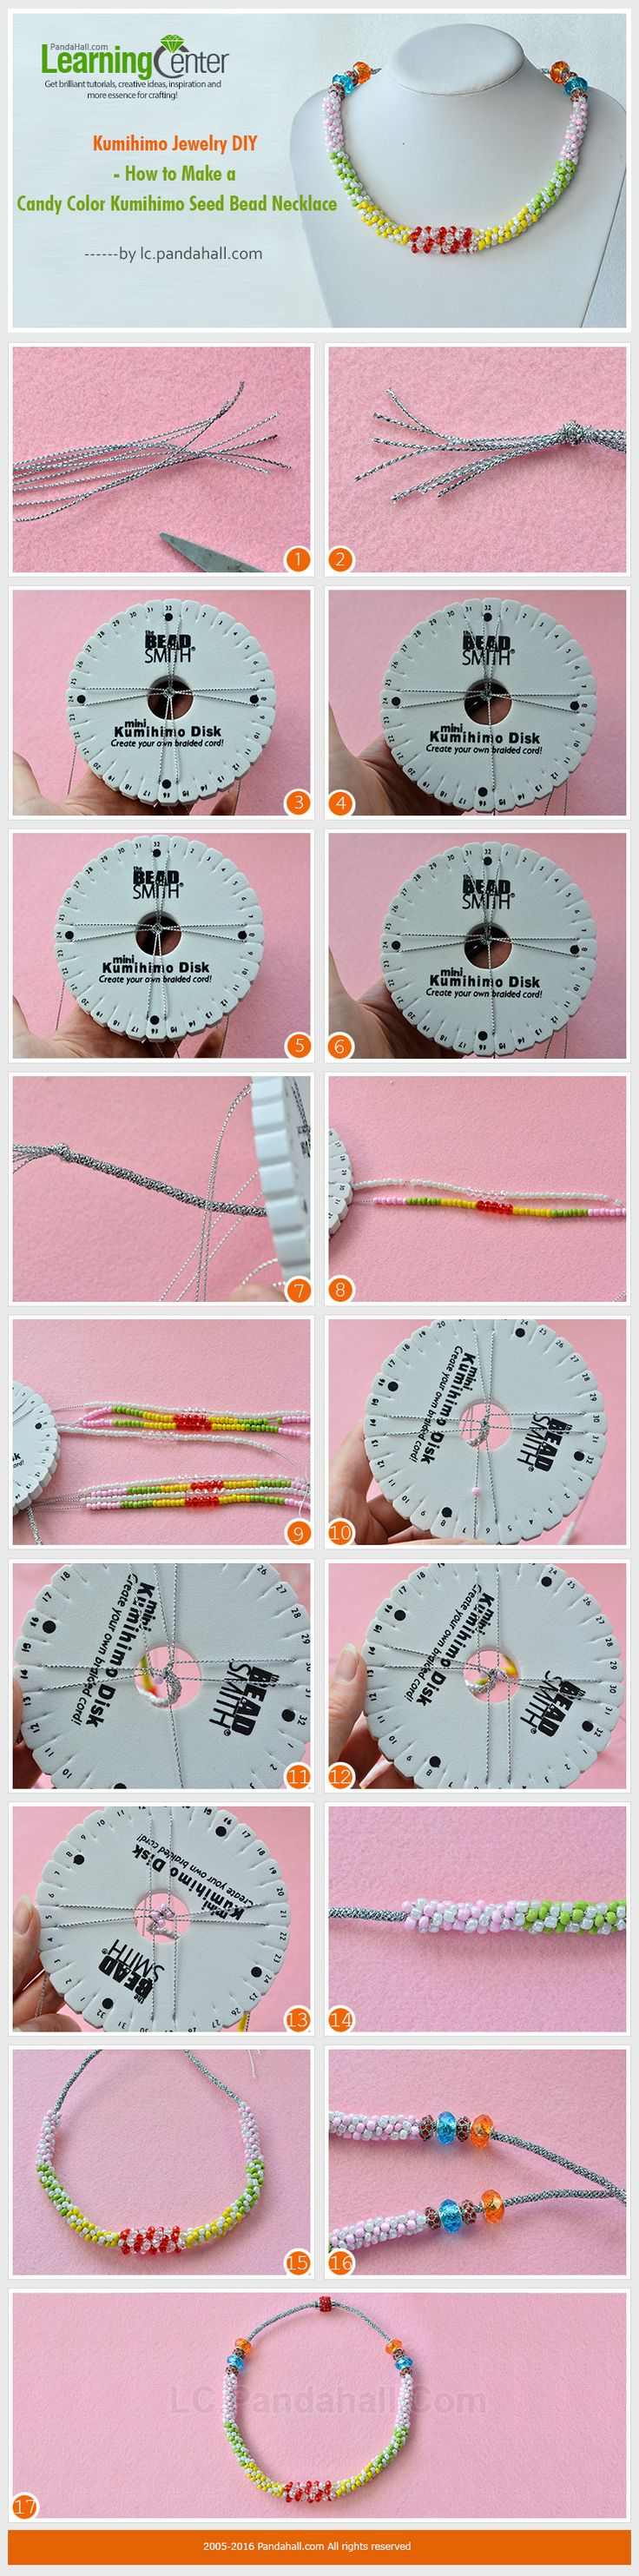 183 best string crafts kumihimo images on pinterest braid diy kumihimo jewelry diy how to make a candy color kumihimo seed bead necklace from lc fandeluxe Gallery